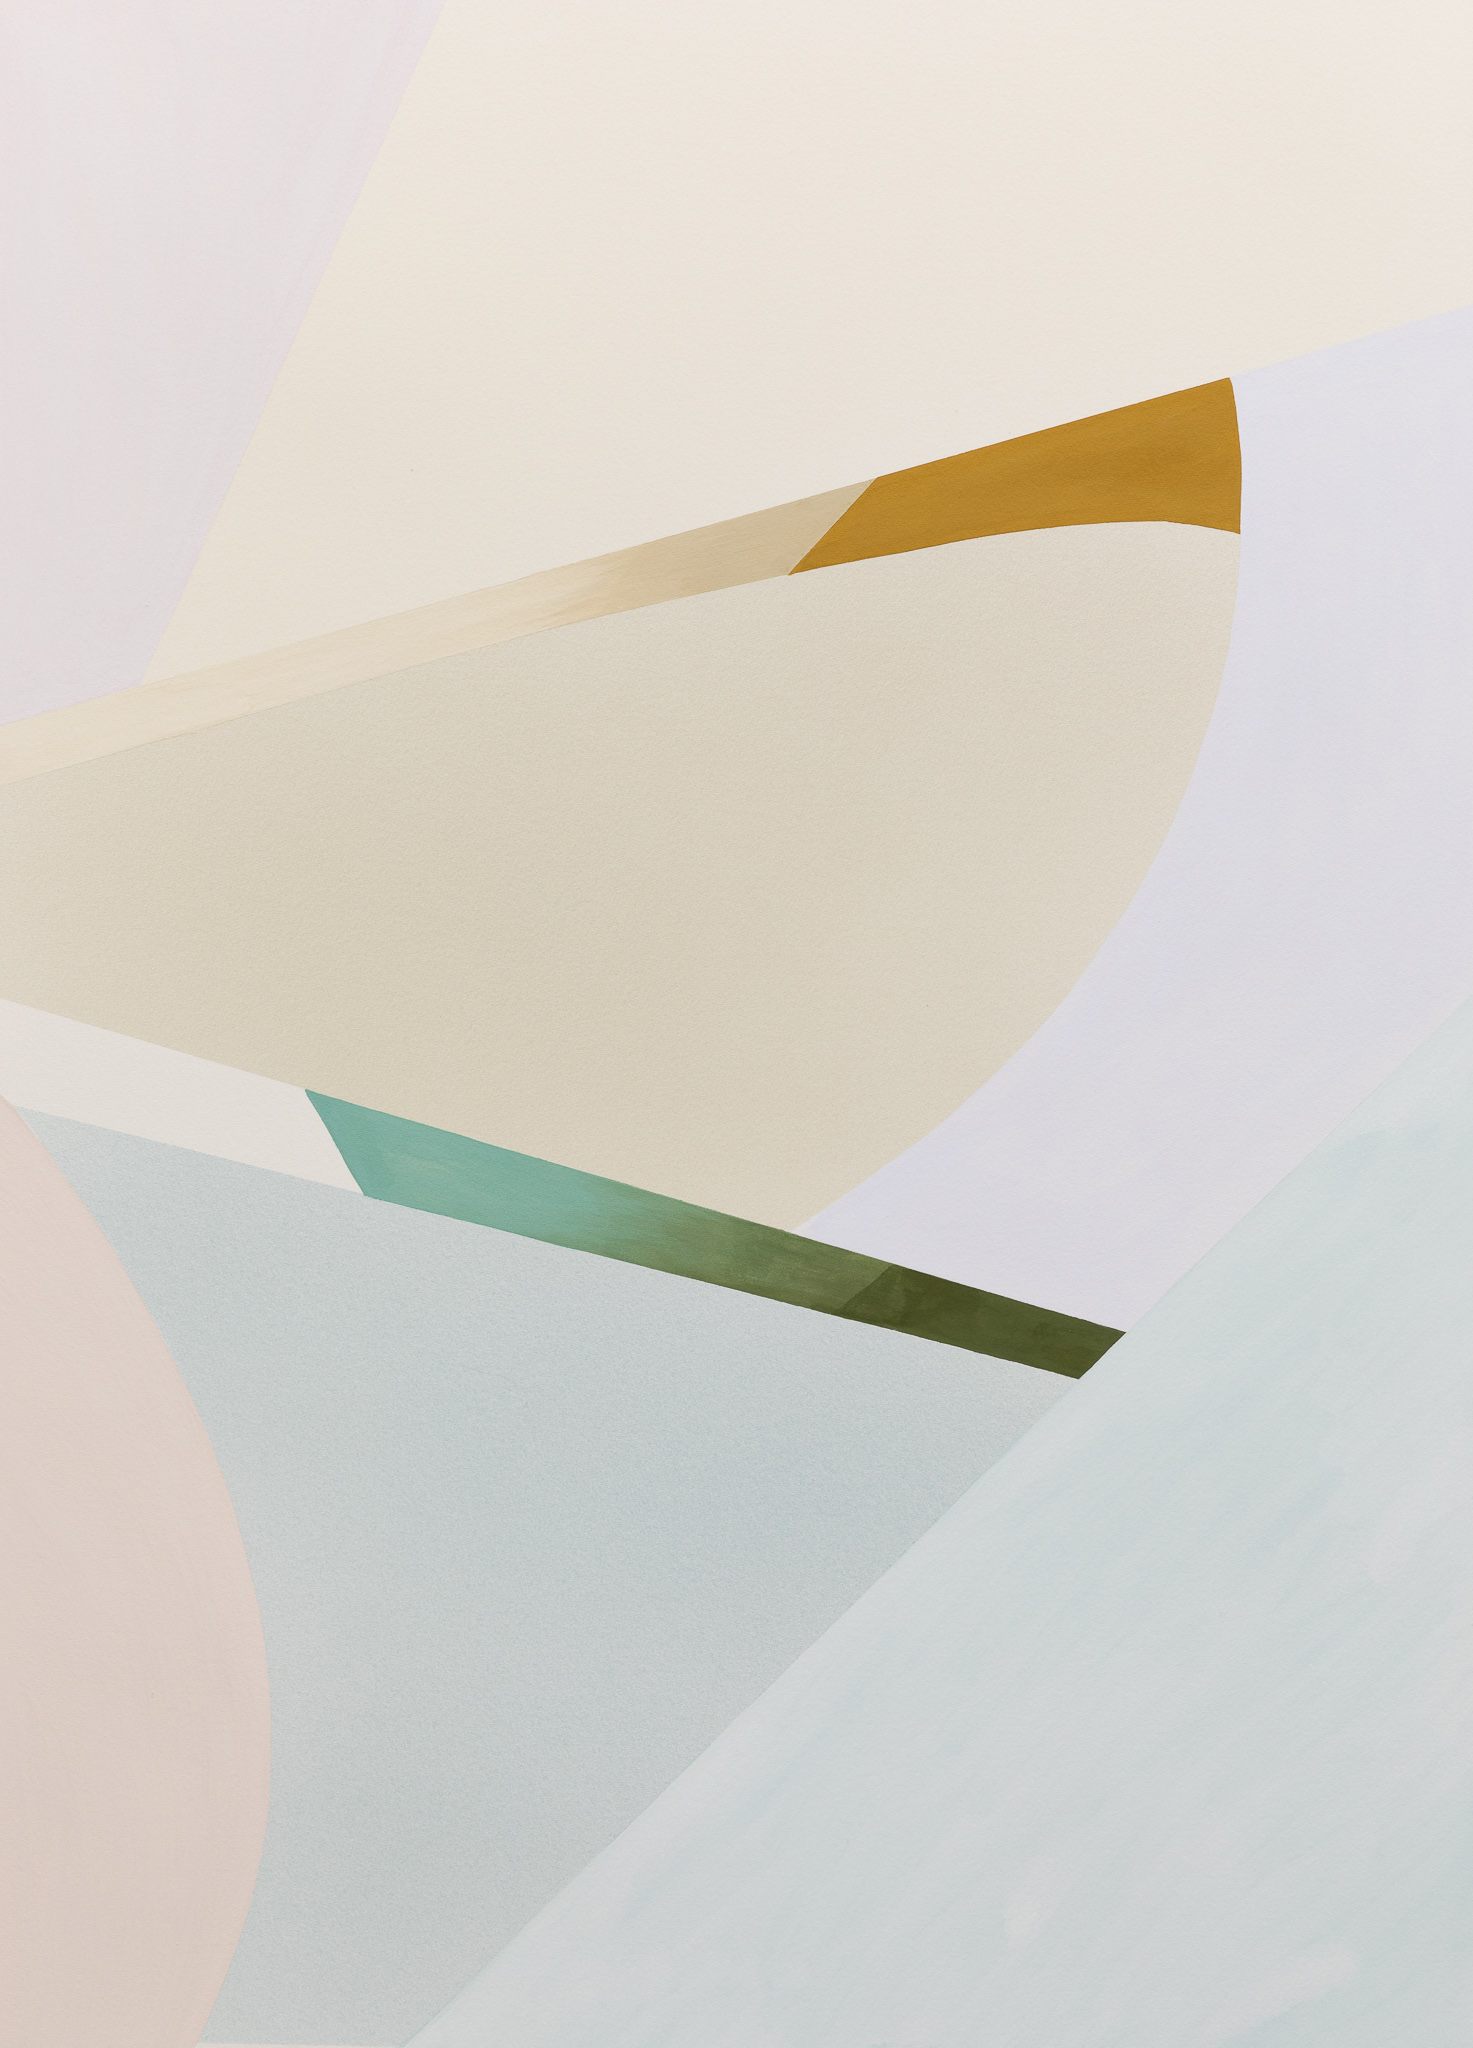 Lightcurves V, 2020, Watercolor and casein tempera on paper, 130,5 x 94,3 cm